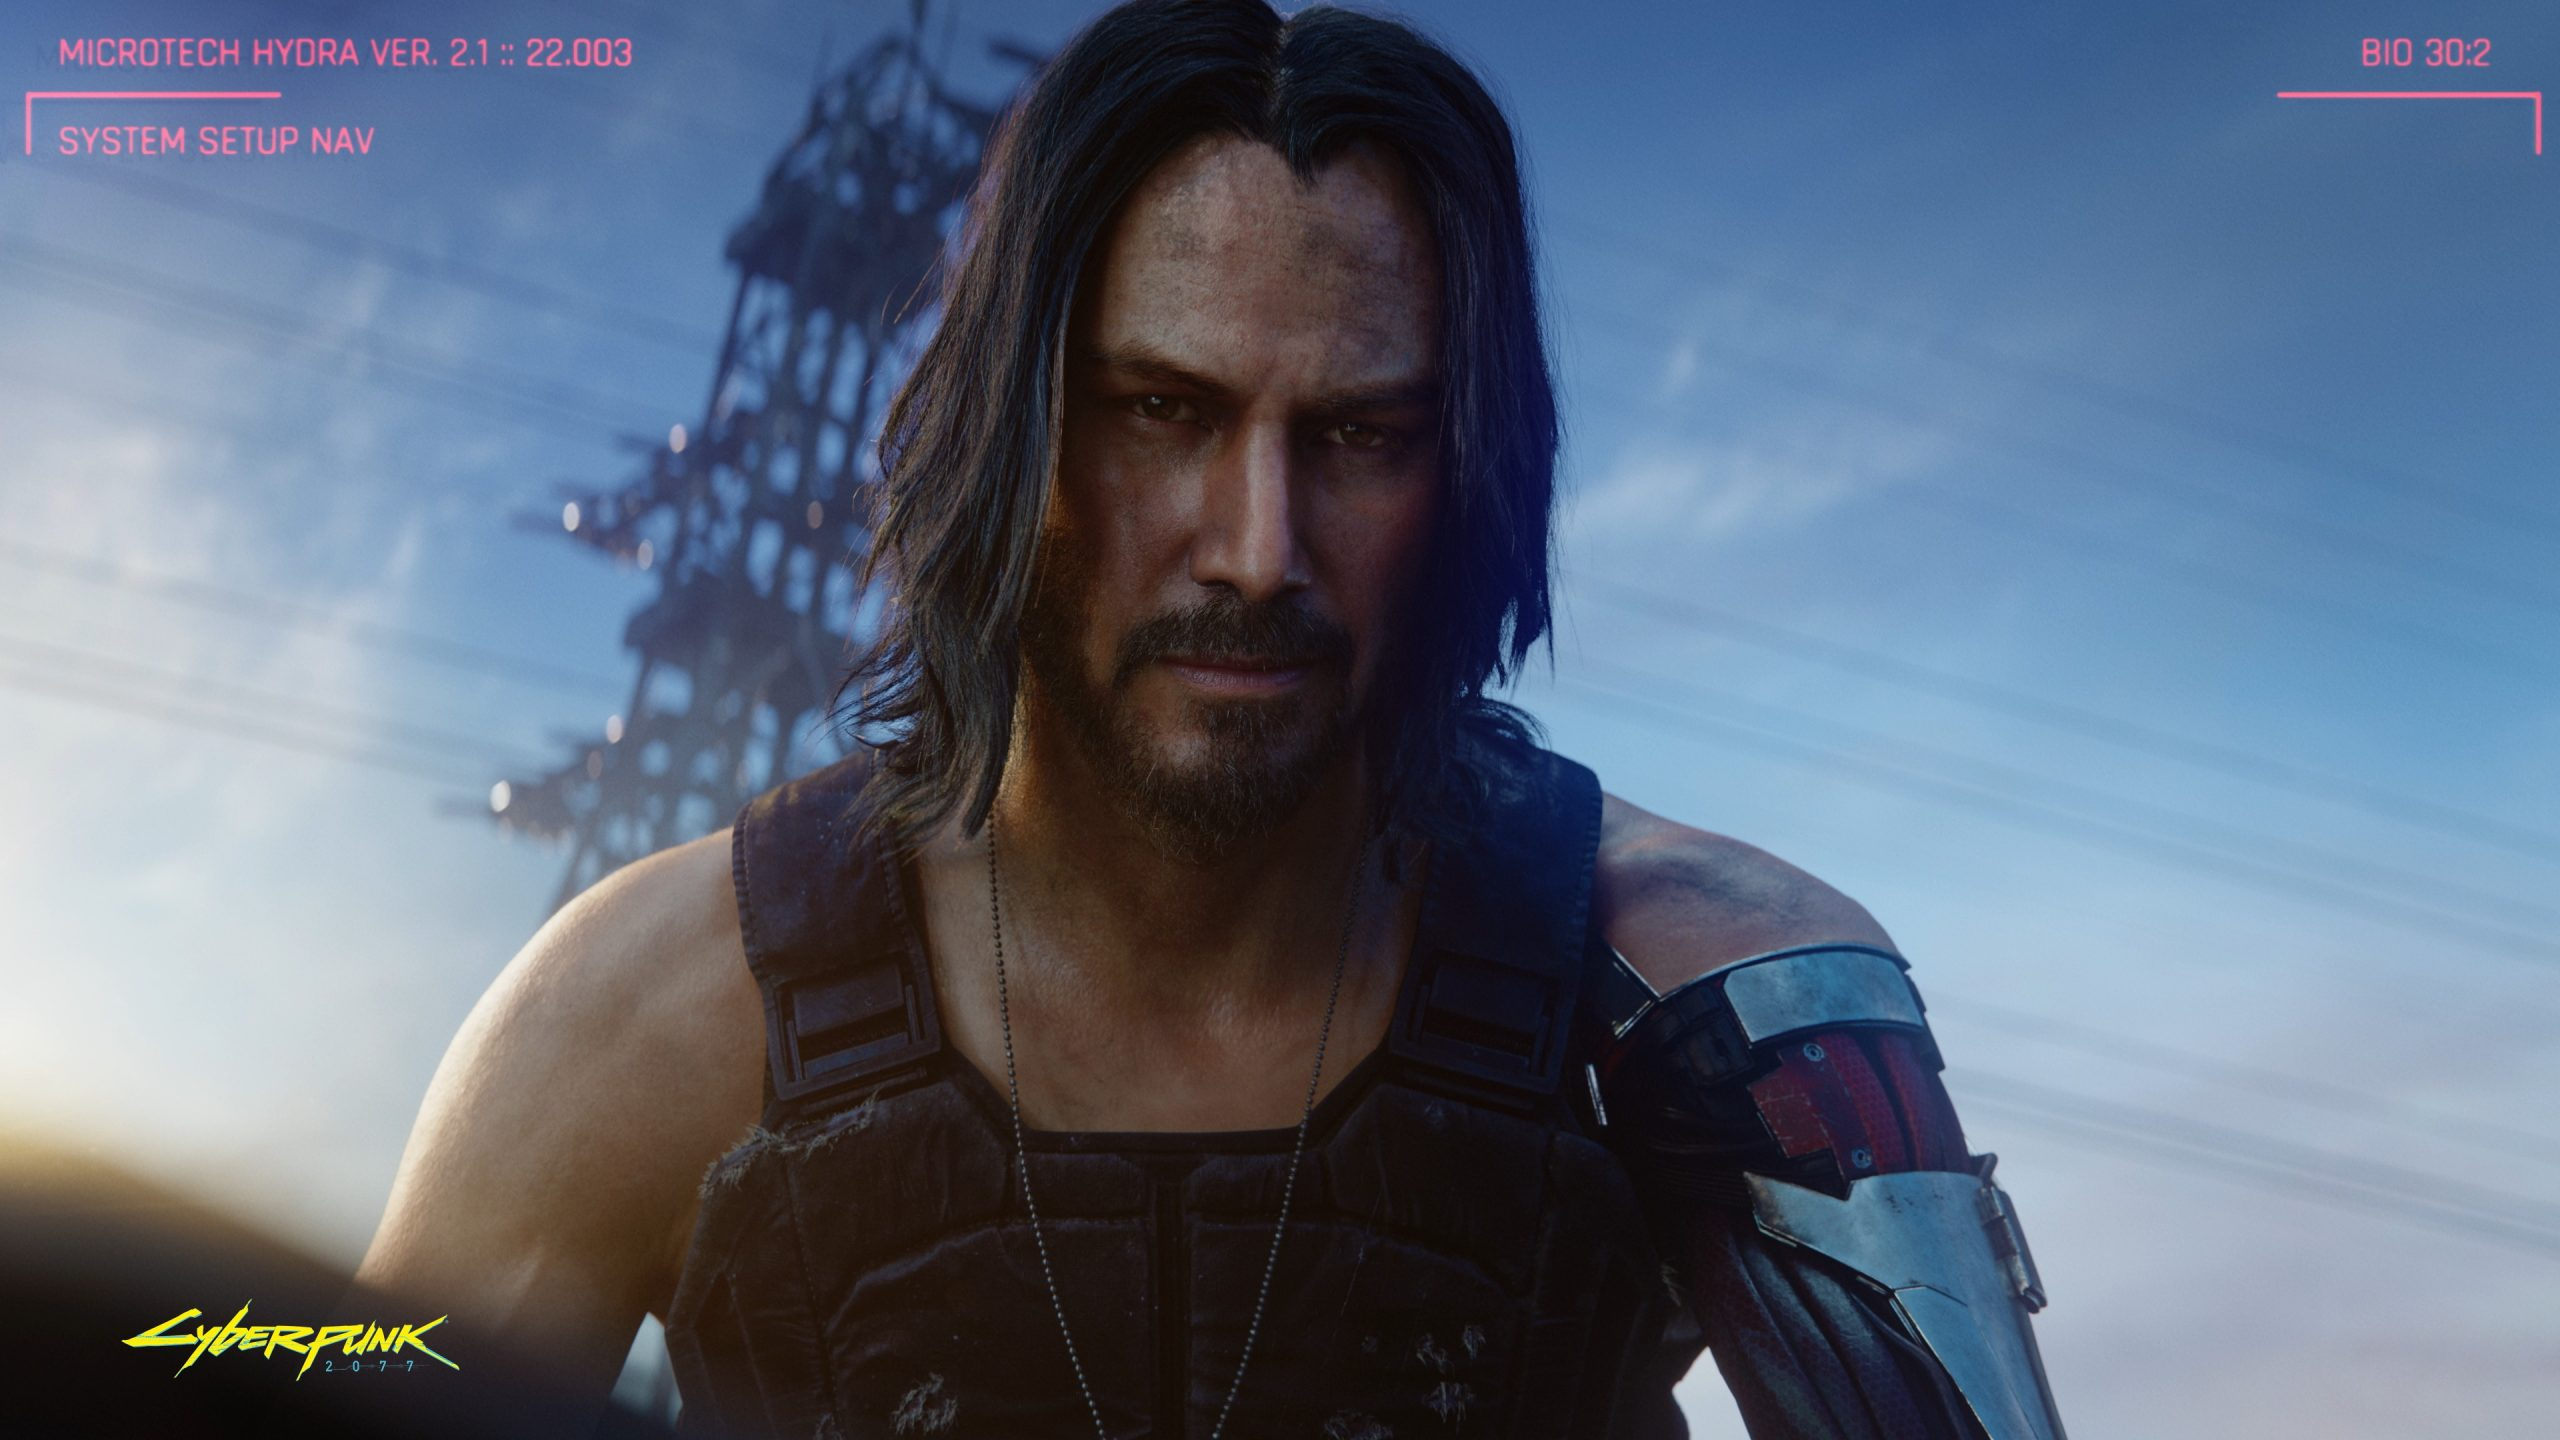 Screenshot Of Keanu Reeves Being Breathtaking In Cyberpunk 2077